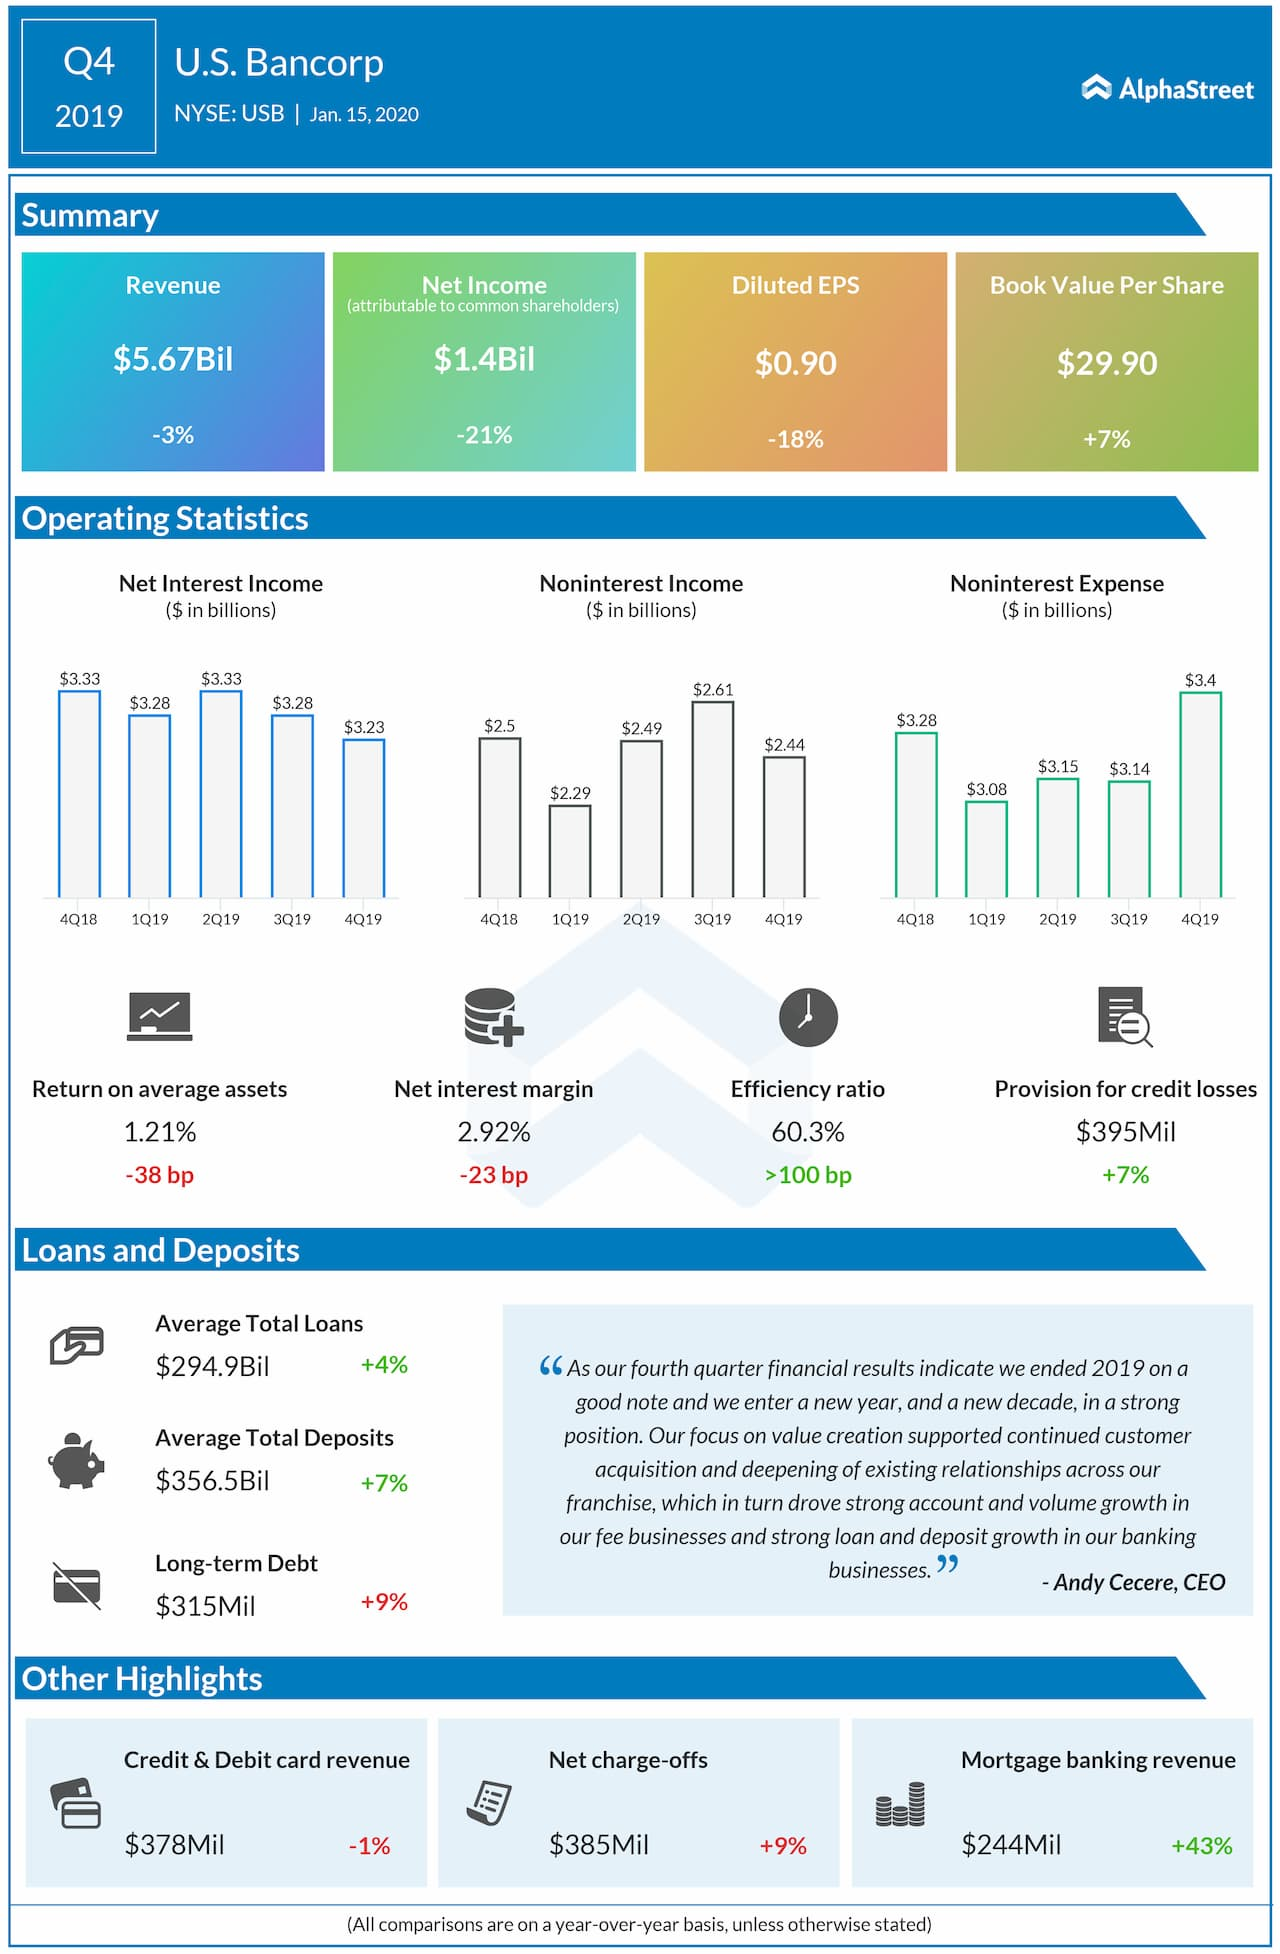 U.S. Bancorp (USB) Q4 2019 Earnings Snapshot